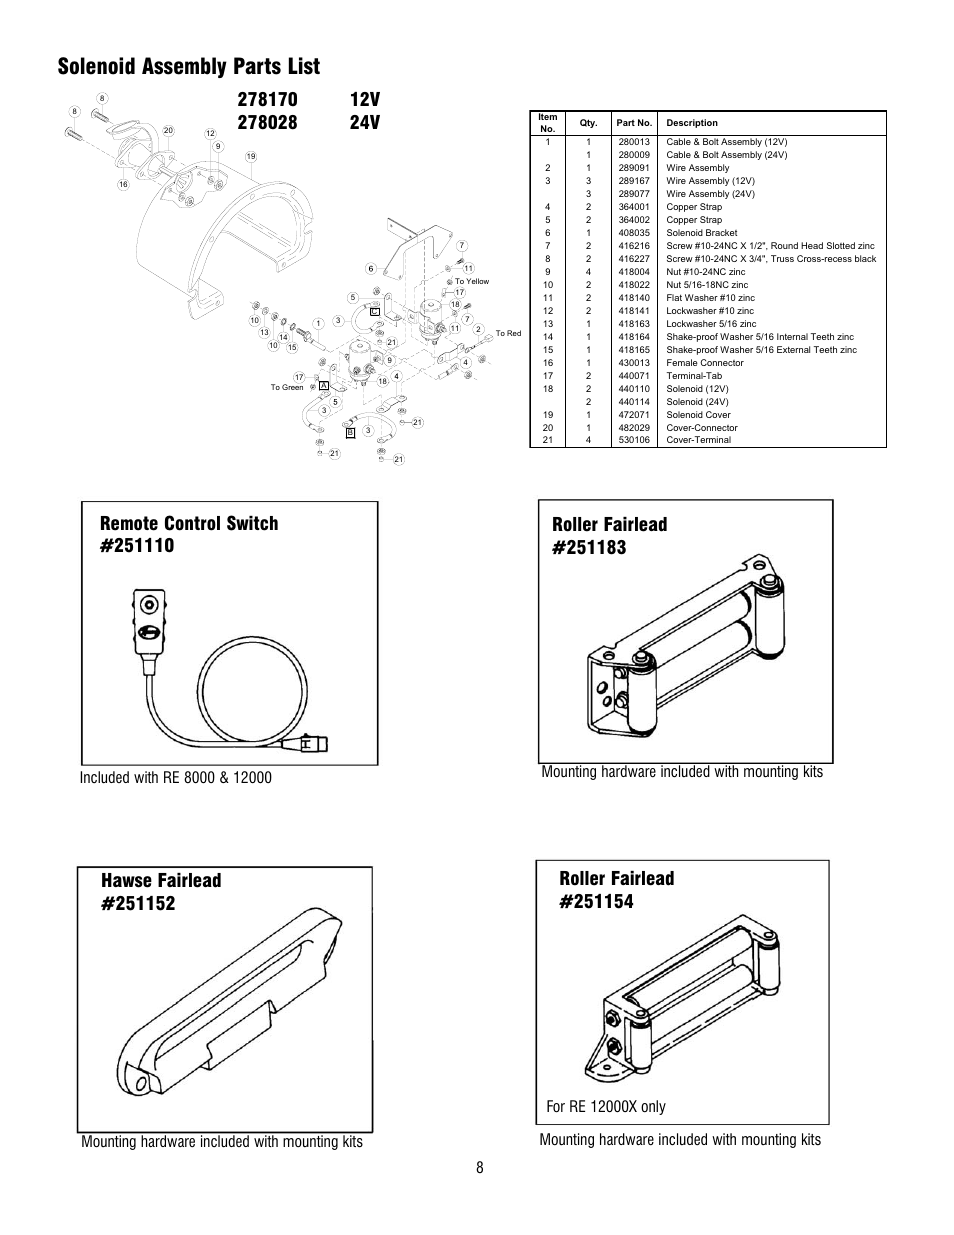 Solenoid Assembly Parts List  Mounting Hardware Included